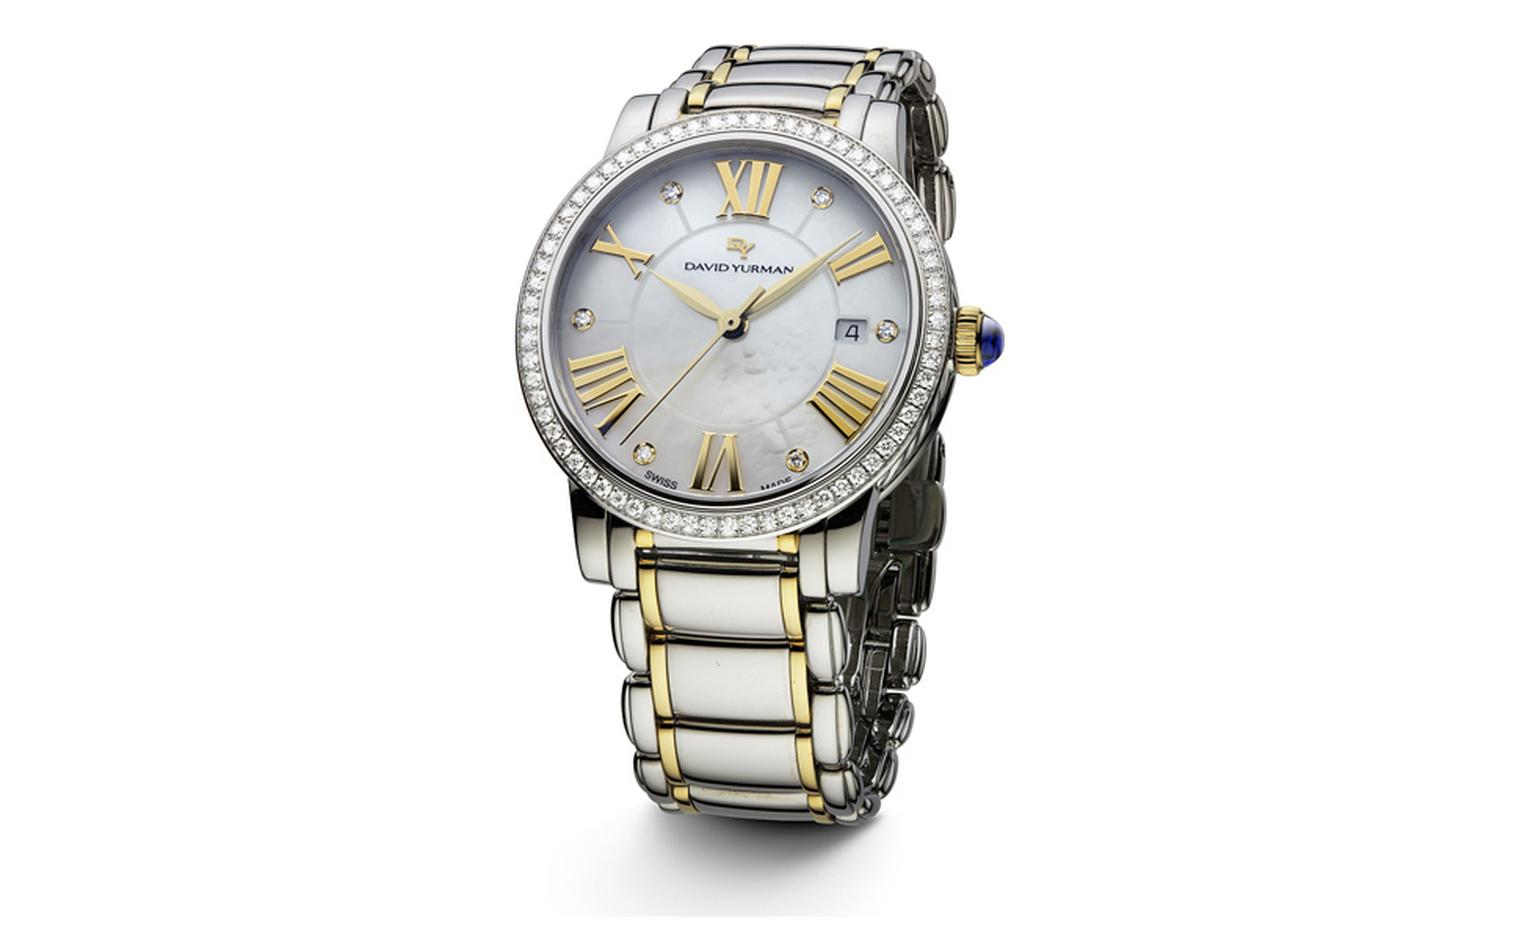 DAVID YURMAN, Ladies Steel & 18k Gold Timepiece, $5,900